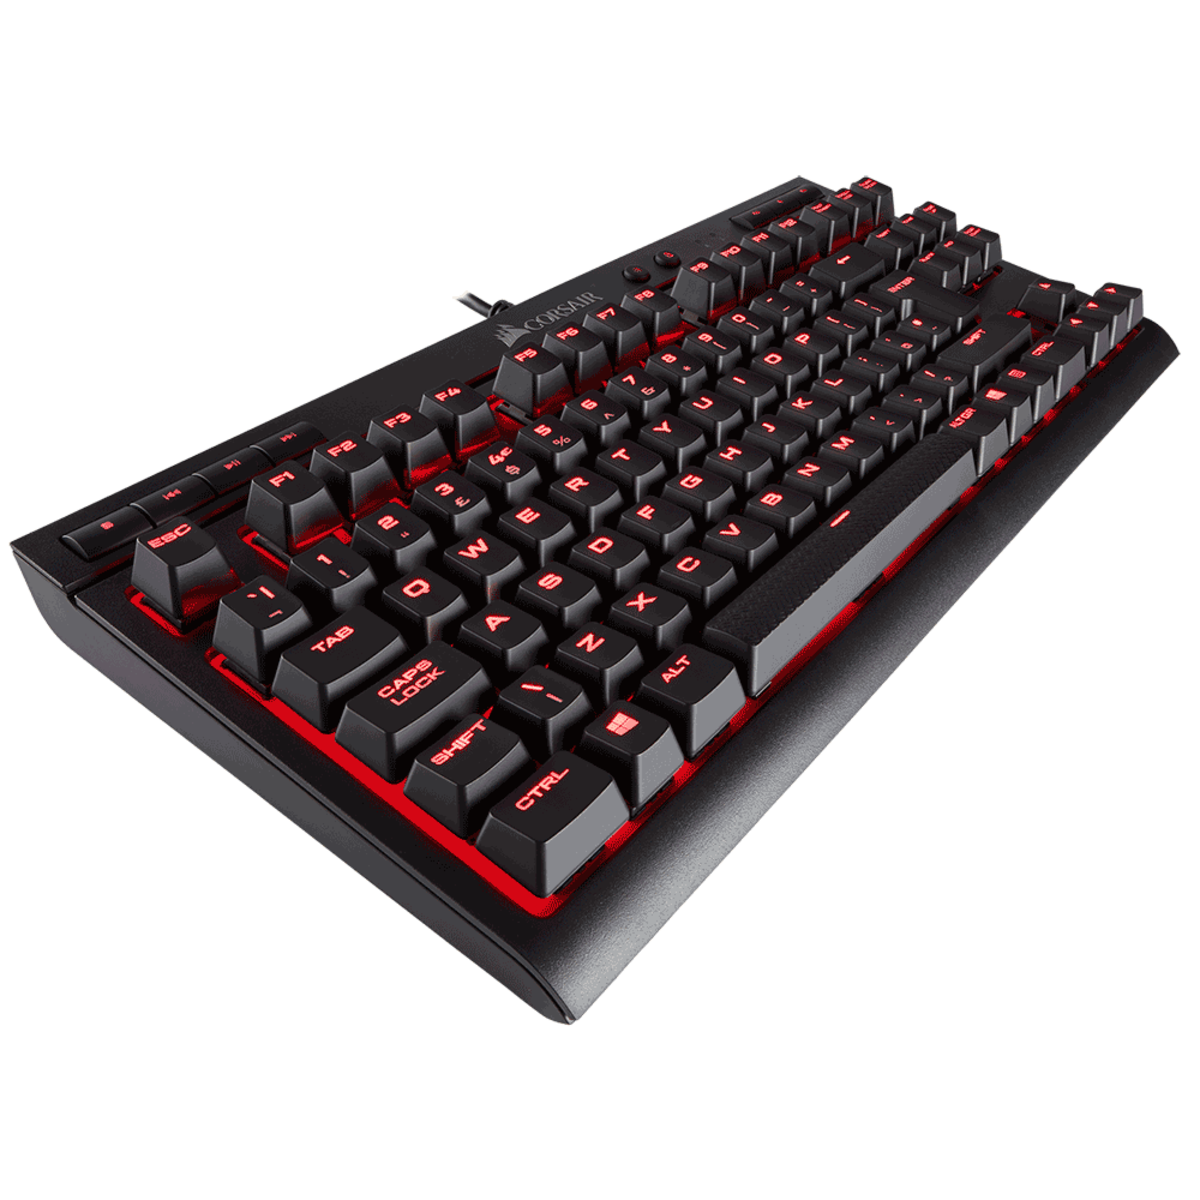 Corsair K63 Compact Mechanical Gaming Keyboard - MX Red